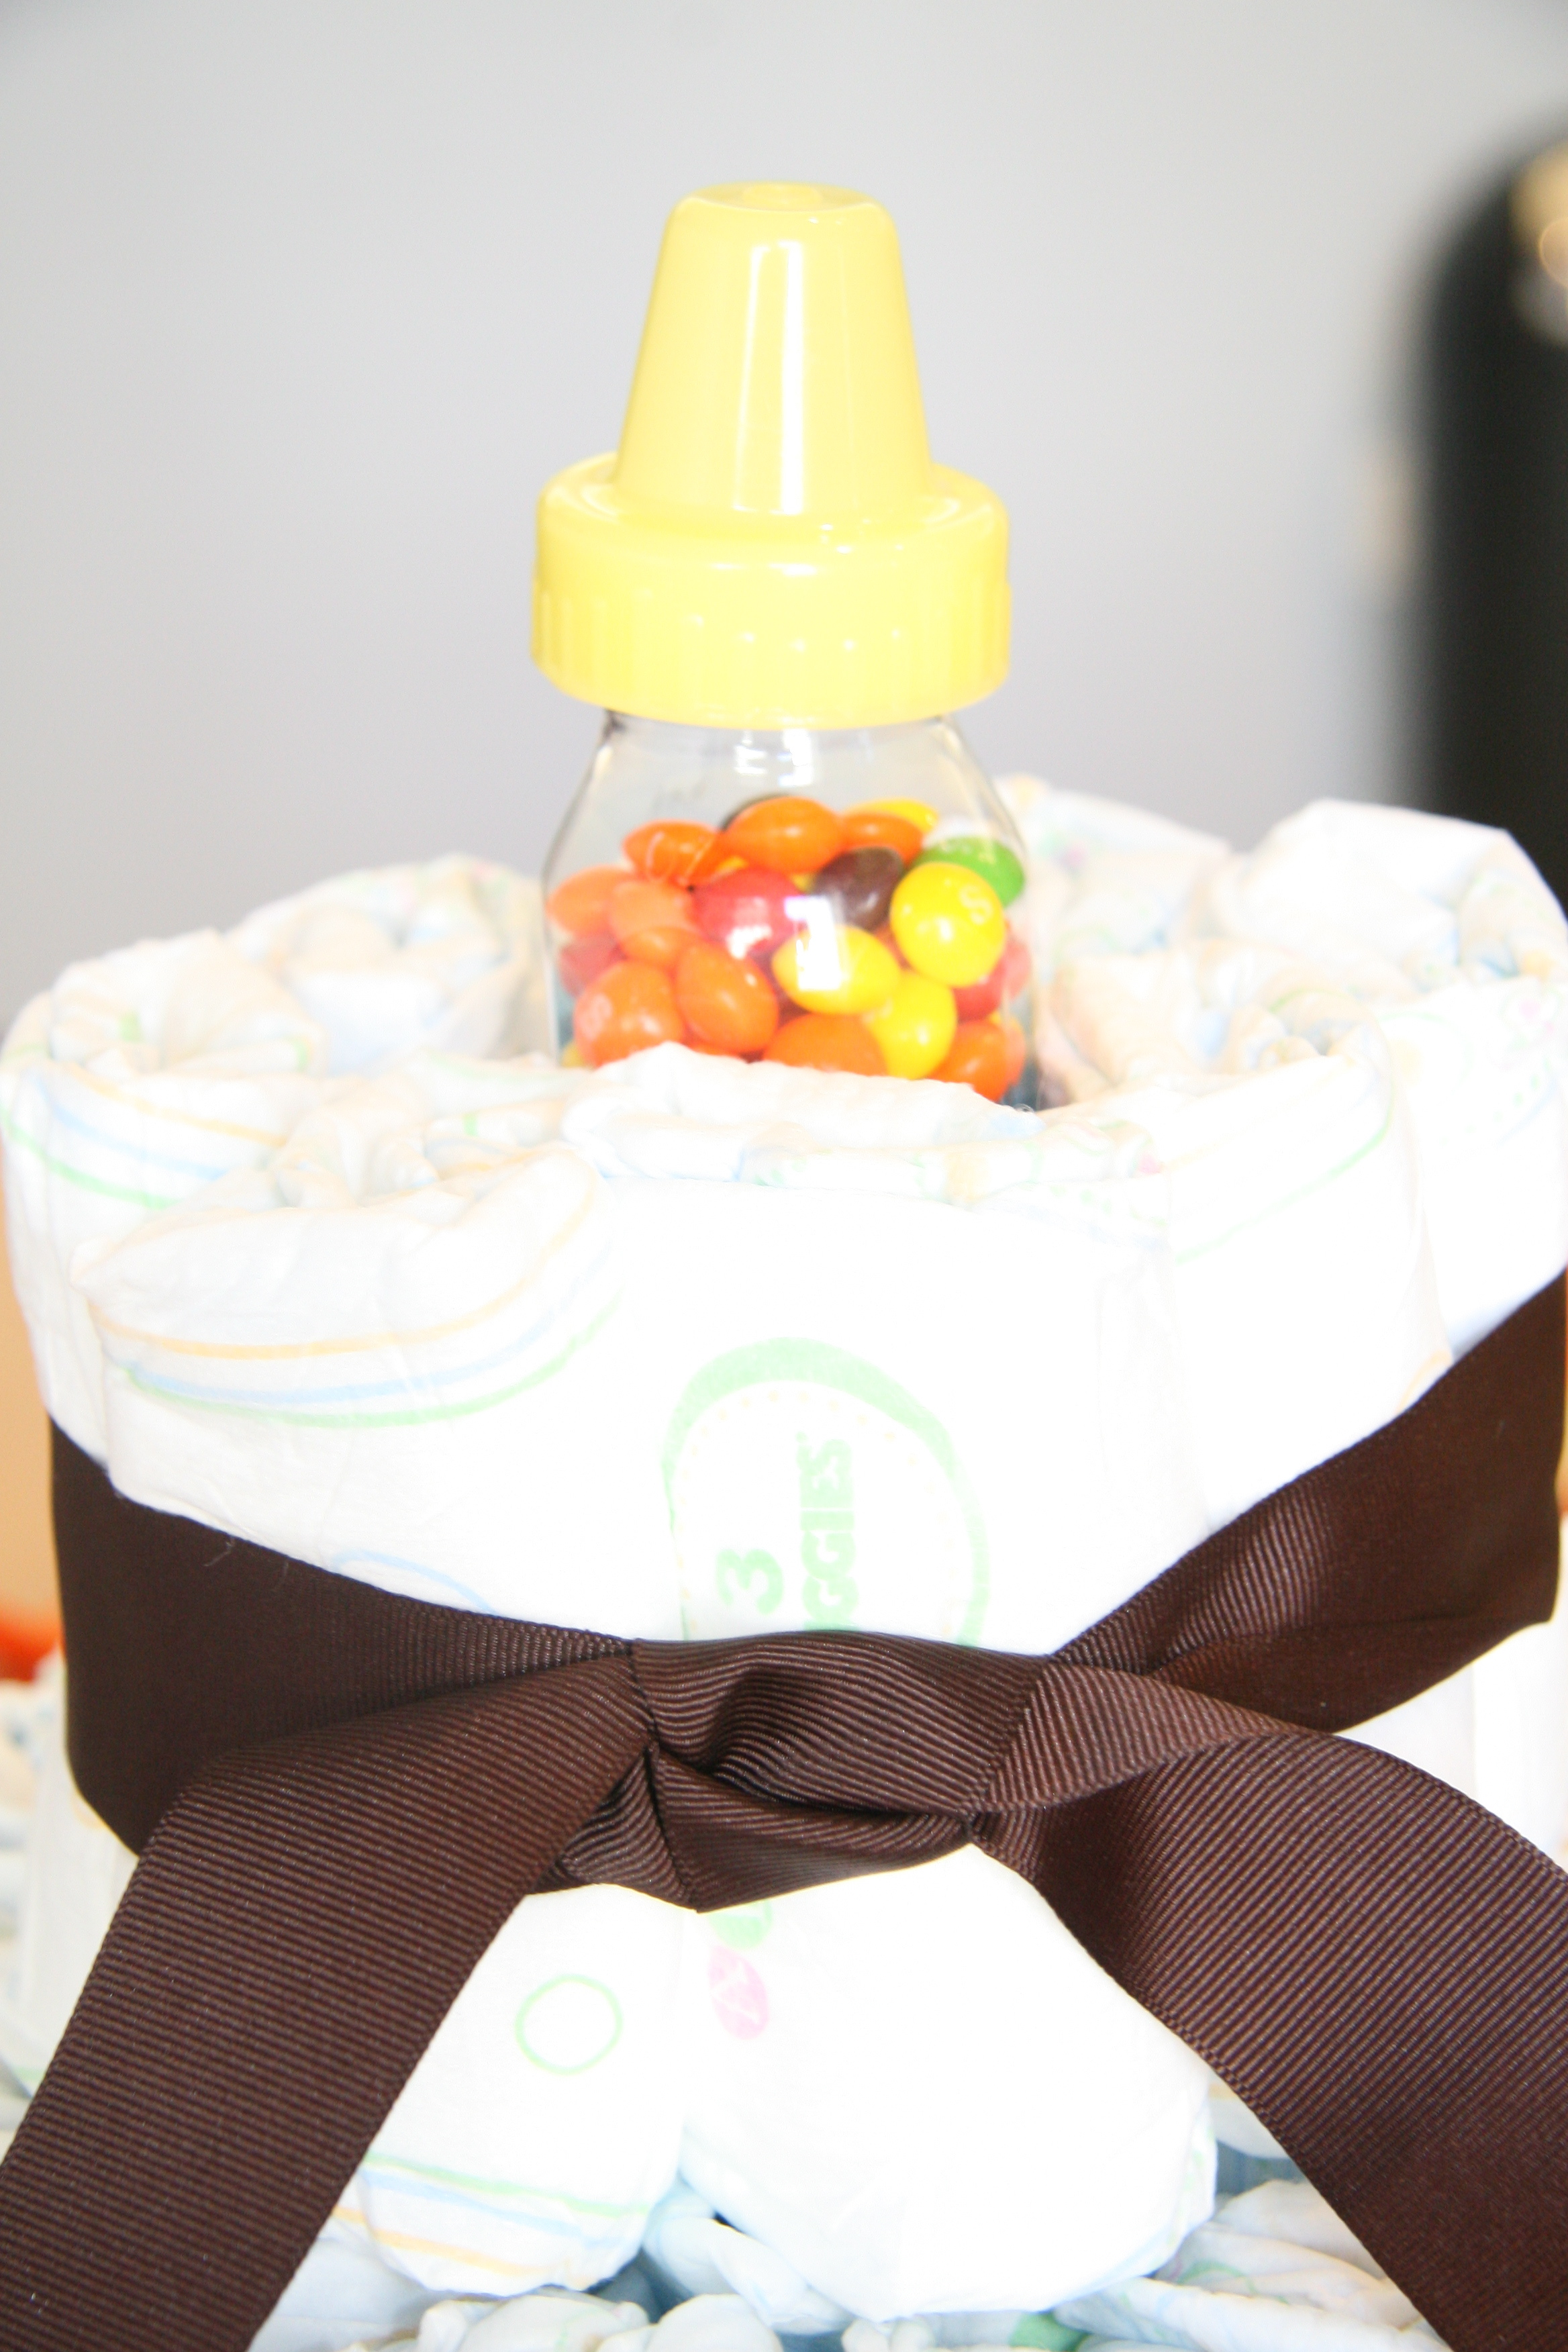 Instead of filling the top layer with diapers, put a candy filled bottle in the center.